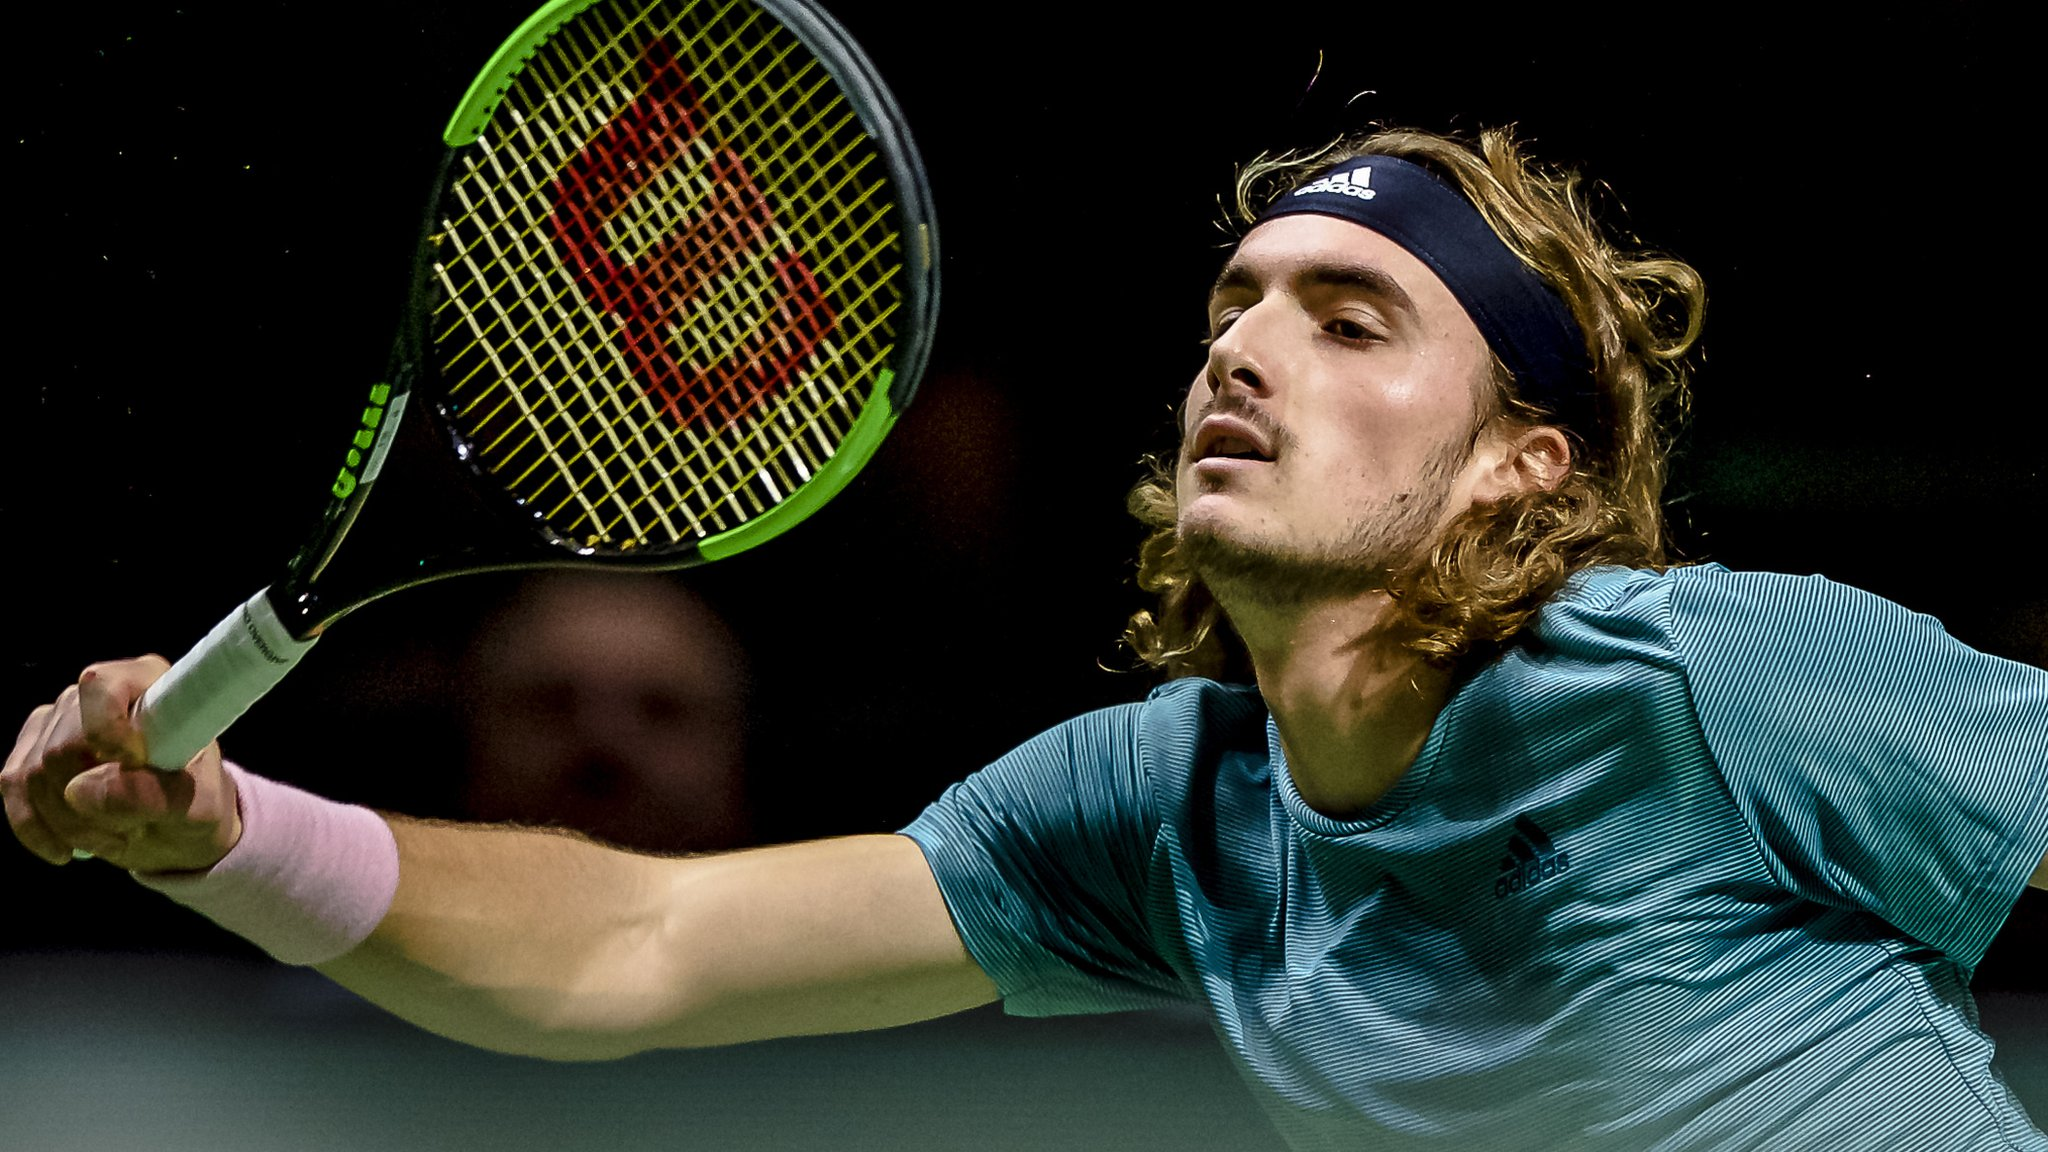 Stefanos Tsitsipas to face Mikhail Kukushkin in Marseille final